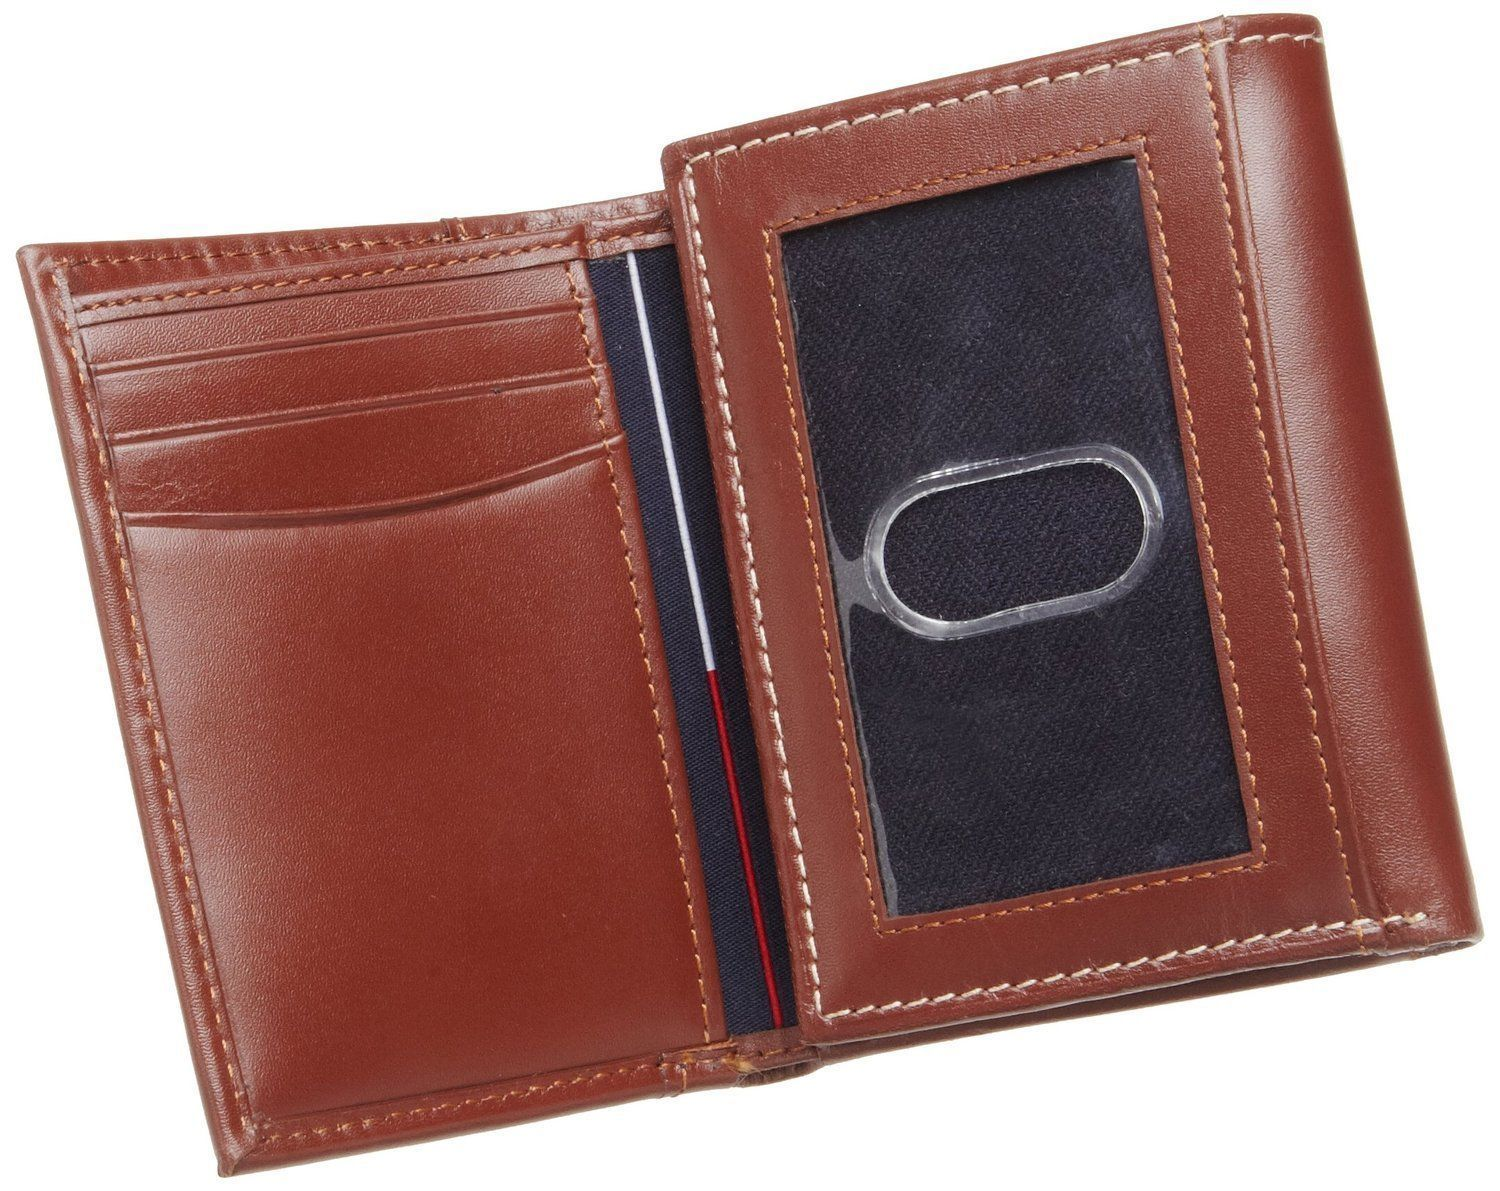 Tommy-Hilfiger-Men-039-s-Premium-Leather-Credit-Card-ID-Wallet-Trifold-31TL11X033 thumbnail 22